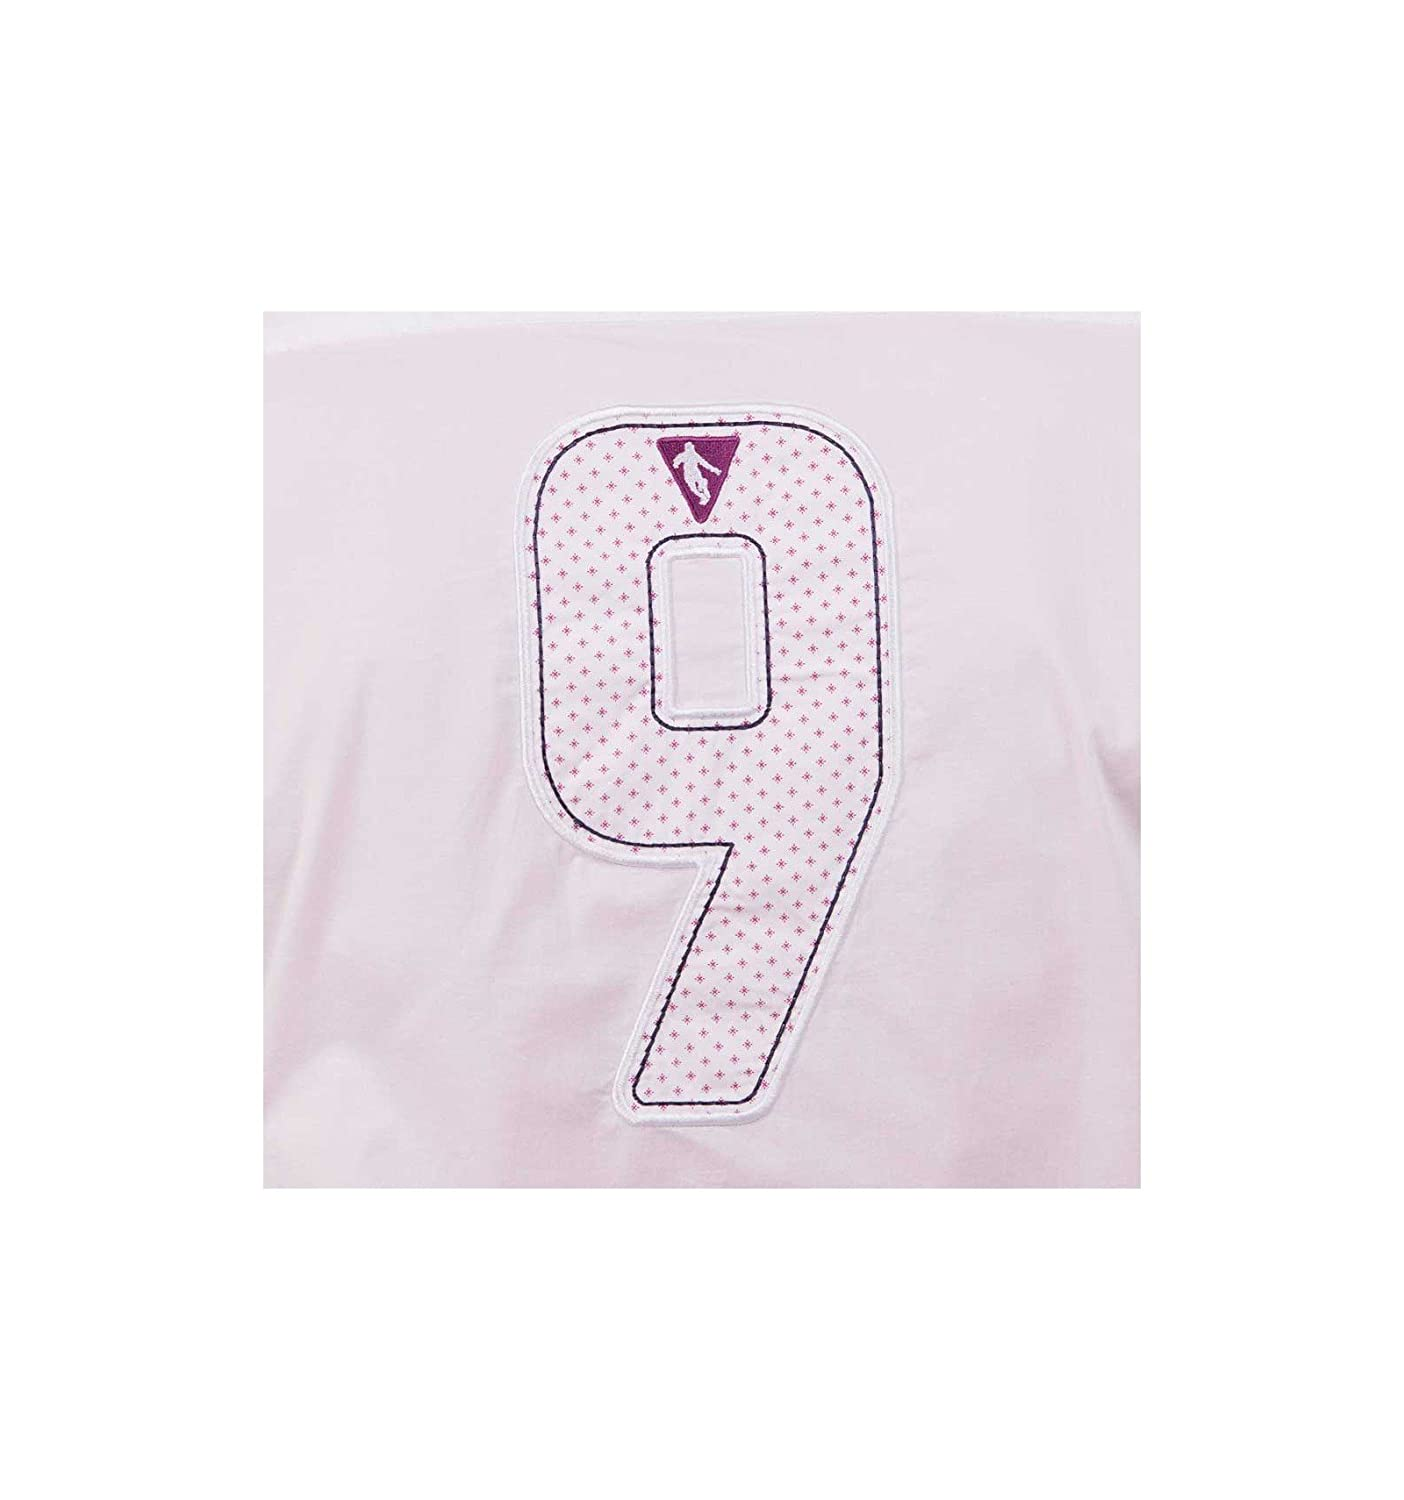 CAMBERABERO Chemise Rugby Adulte Manches Courtes